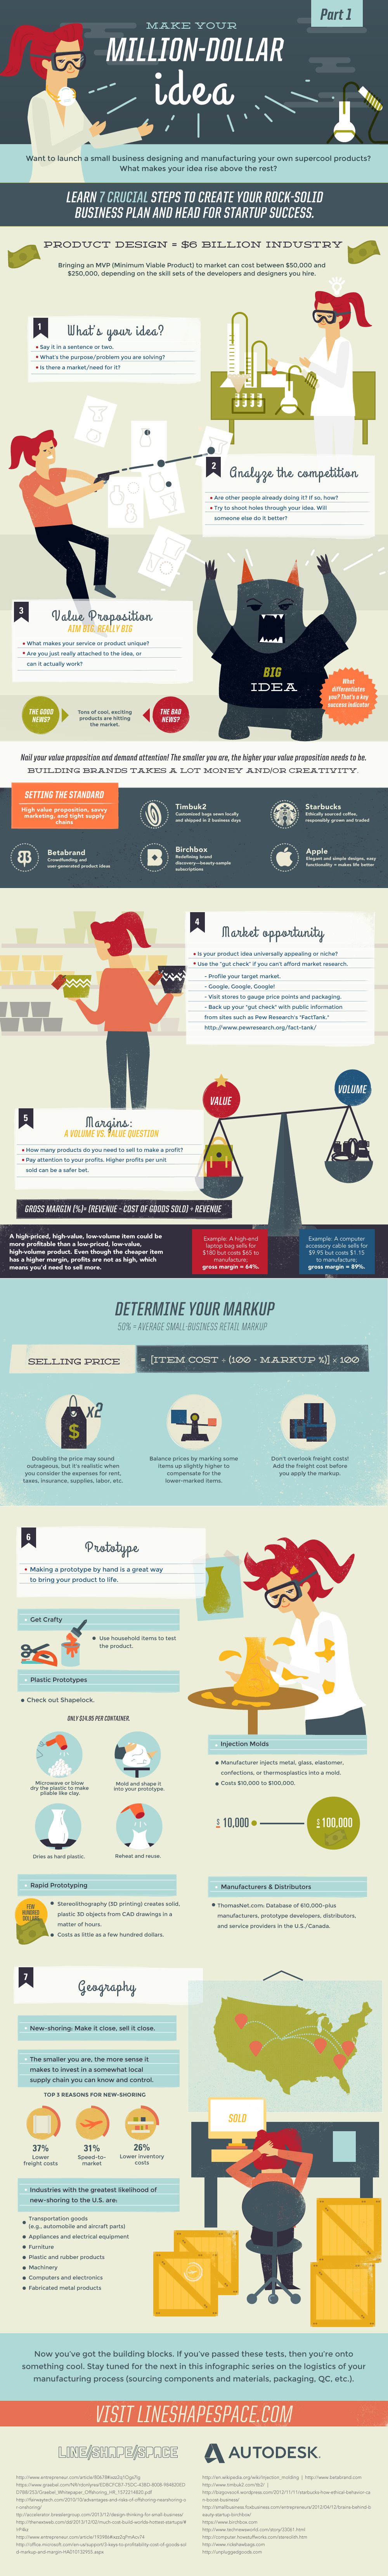 Make Your Million-Dollar Idea #Infographic #Business #Startup